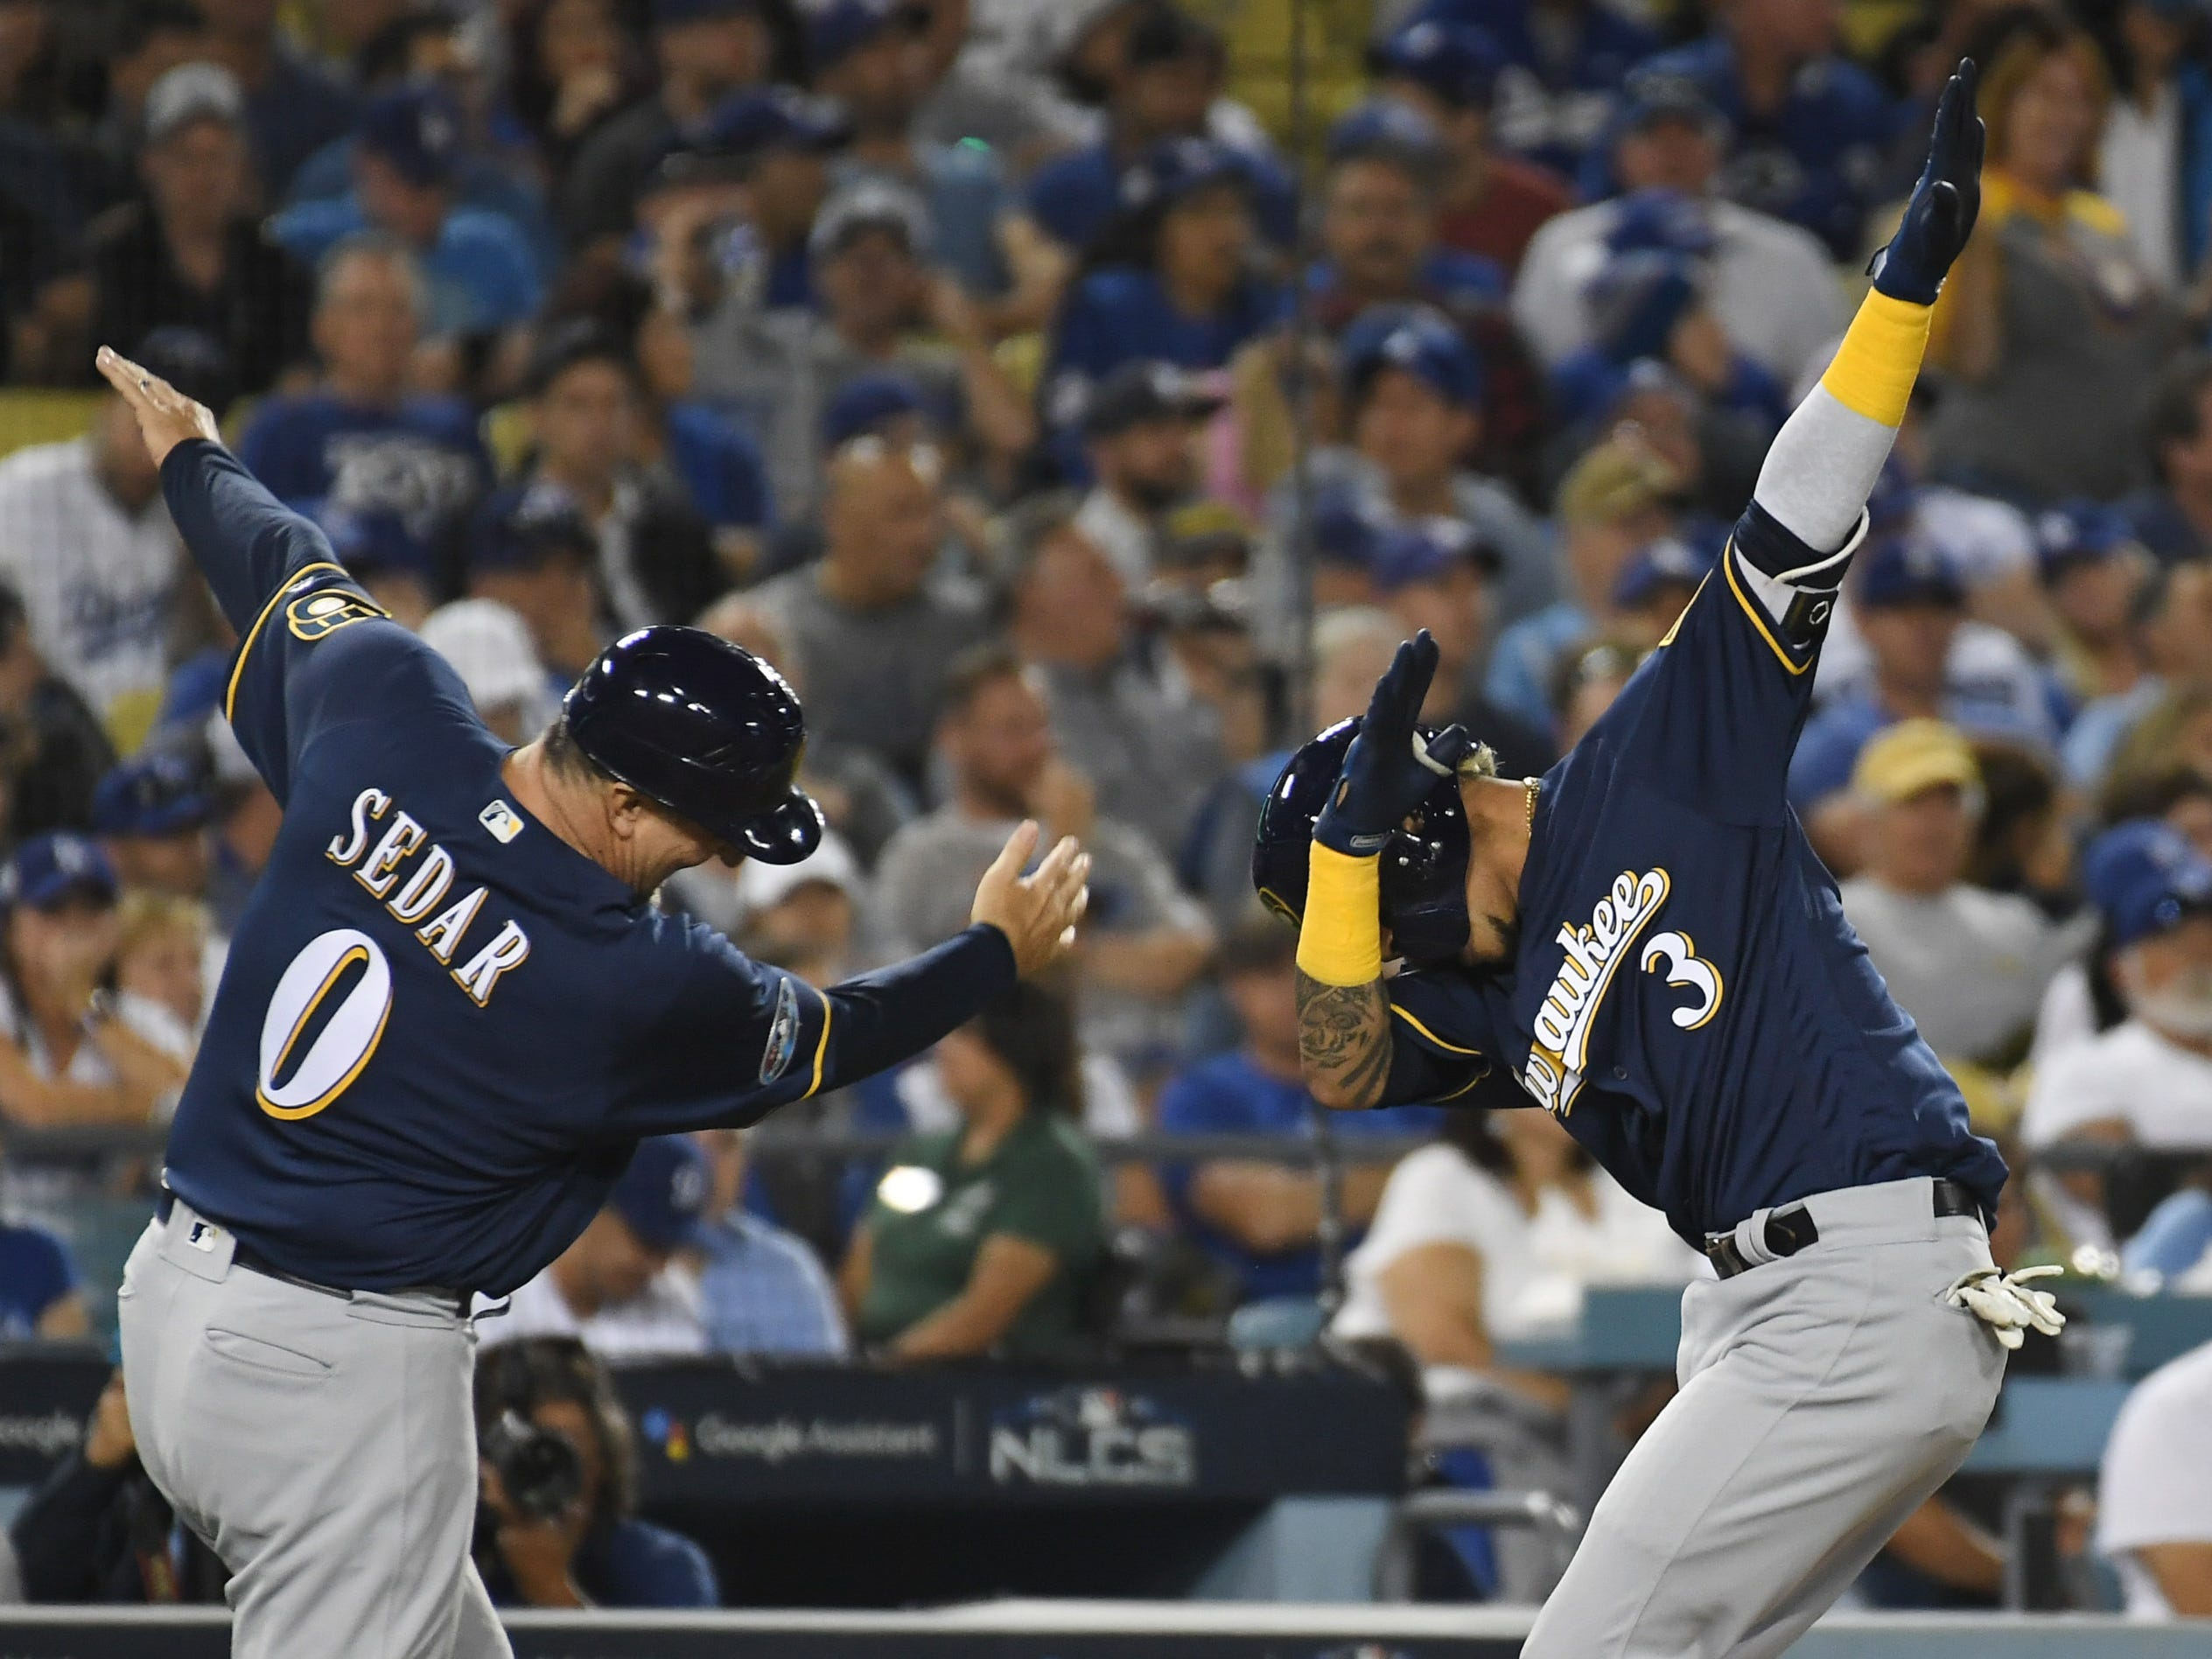 NLCS Game 3: Brewers shortstop Orlando Arcia celebrates with third base coach Ed Sedar after hitting a two-run homer in the seventh inning.